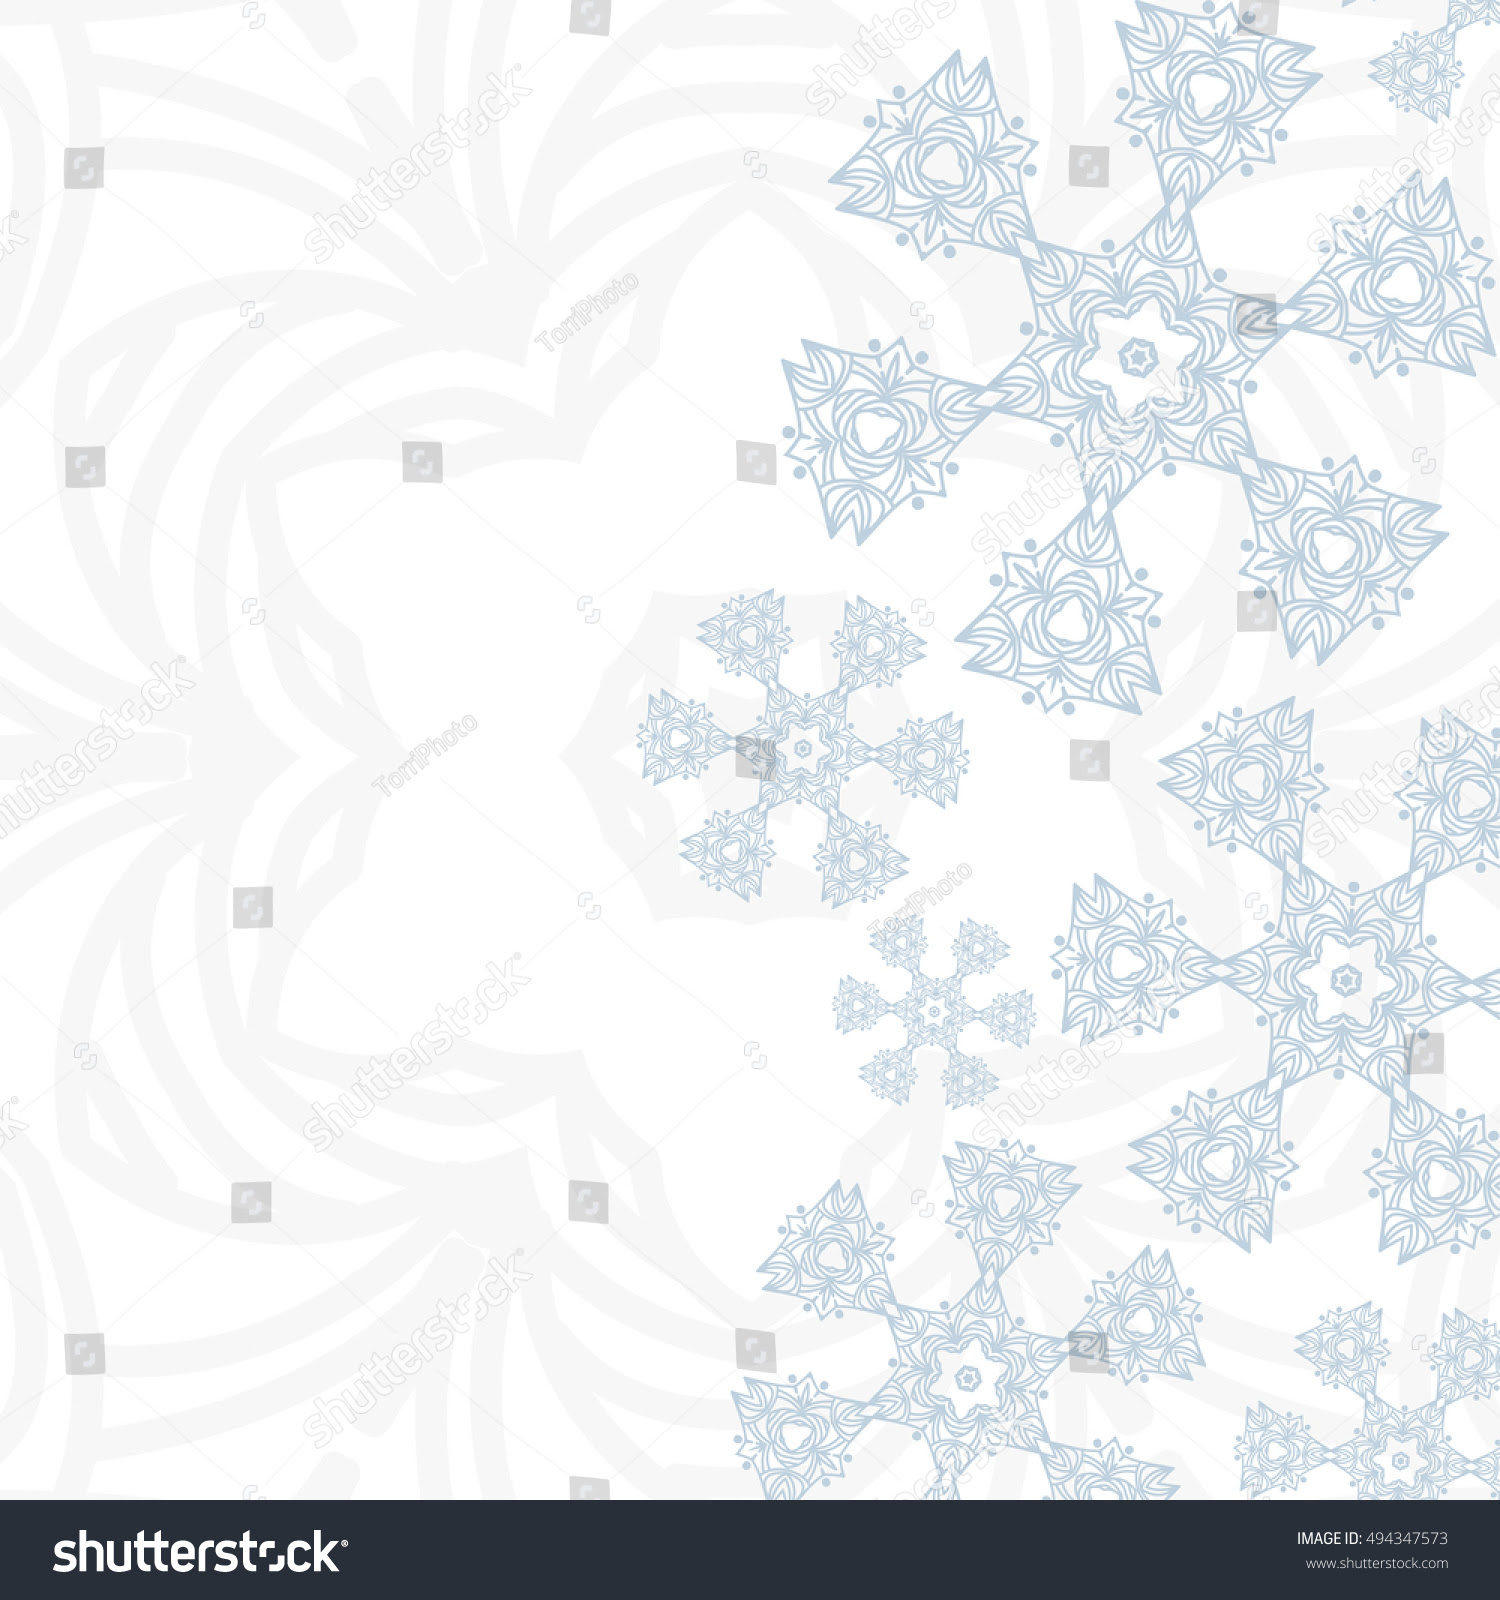 http://www.shutterstock.com/pic-494347573/stock-vector-winter-background-with-abstract-snowflakes-for-card-or-invitation-copy-space-vector-illustration-eps8.html